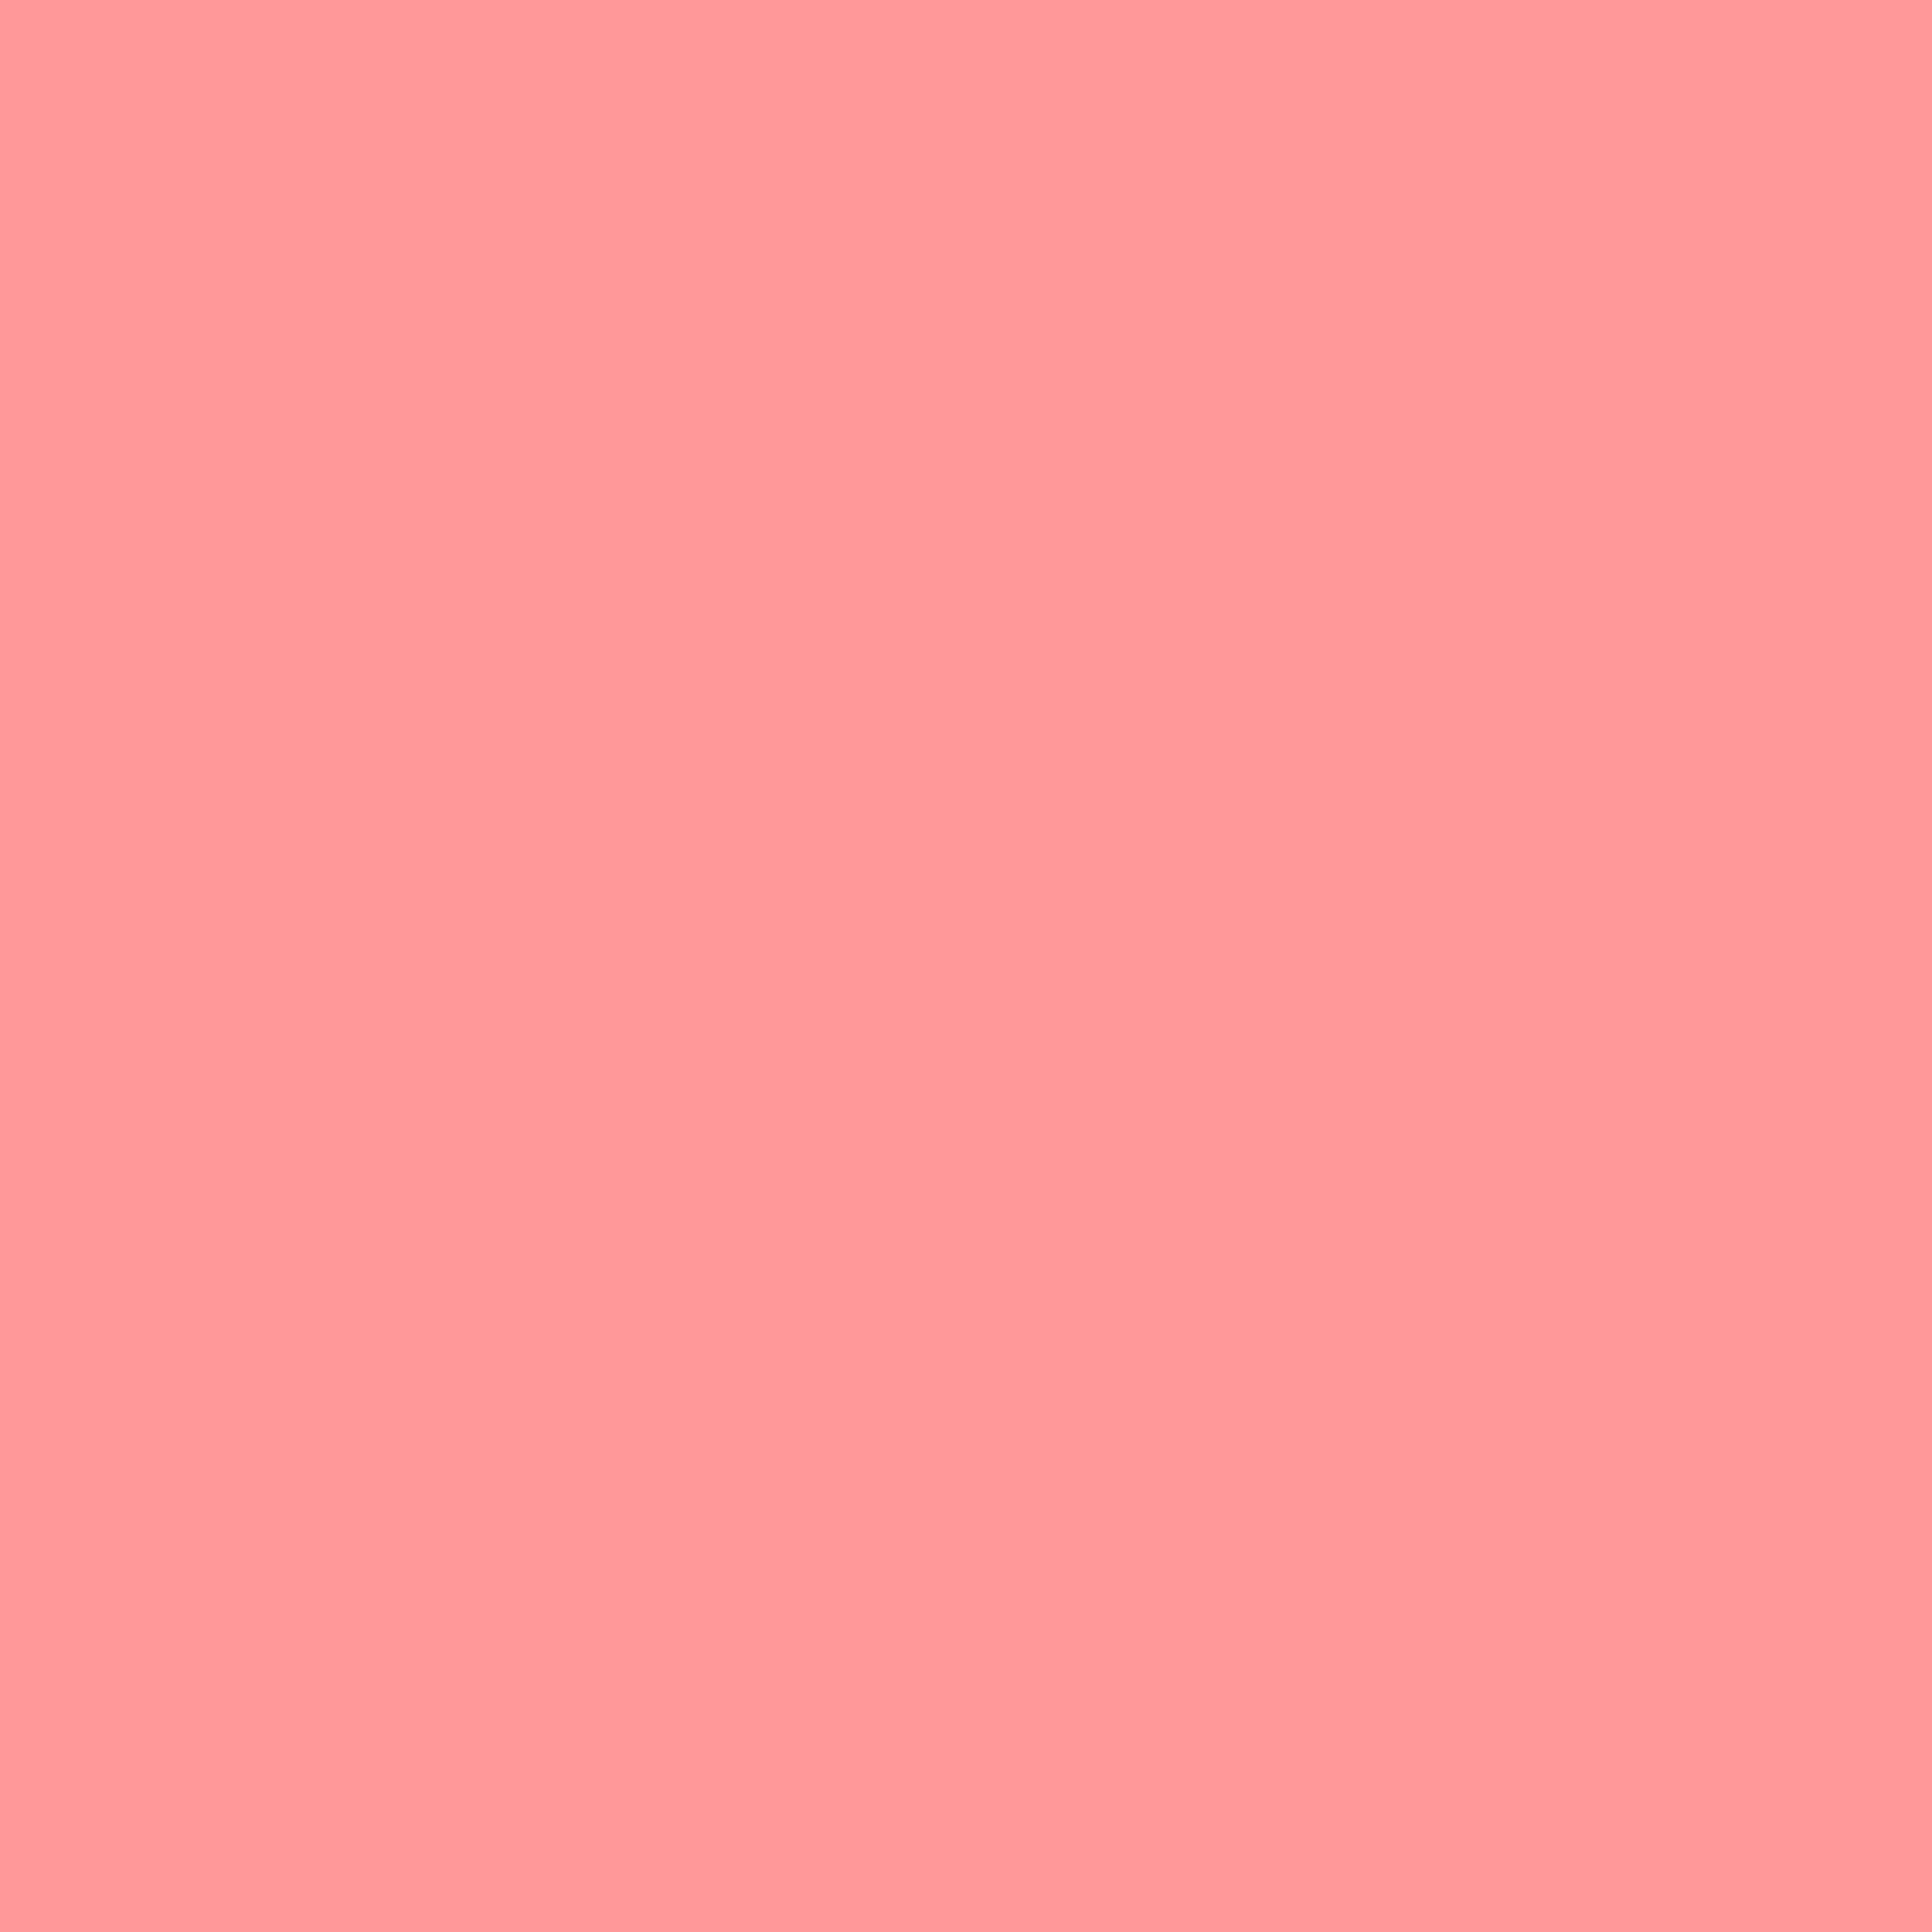 Mauve light salmon pink solid color for Mauve wandfarbe